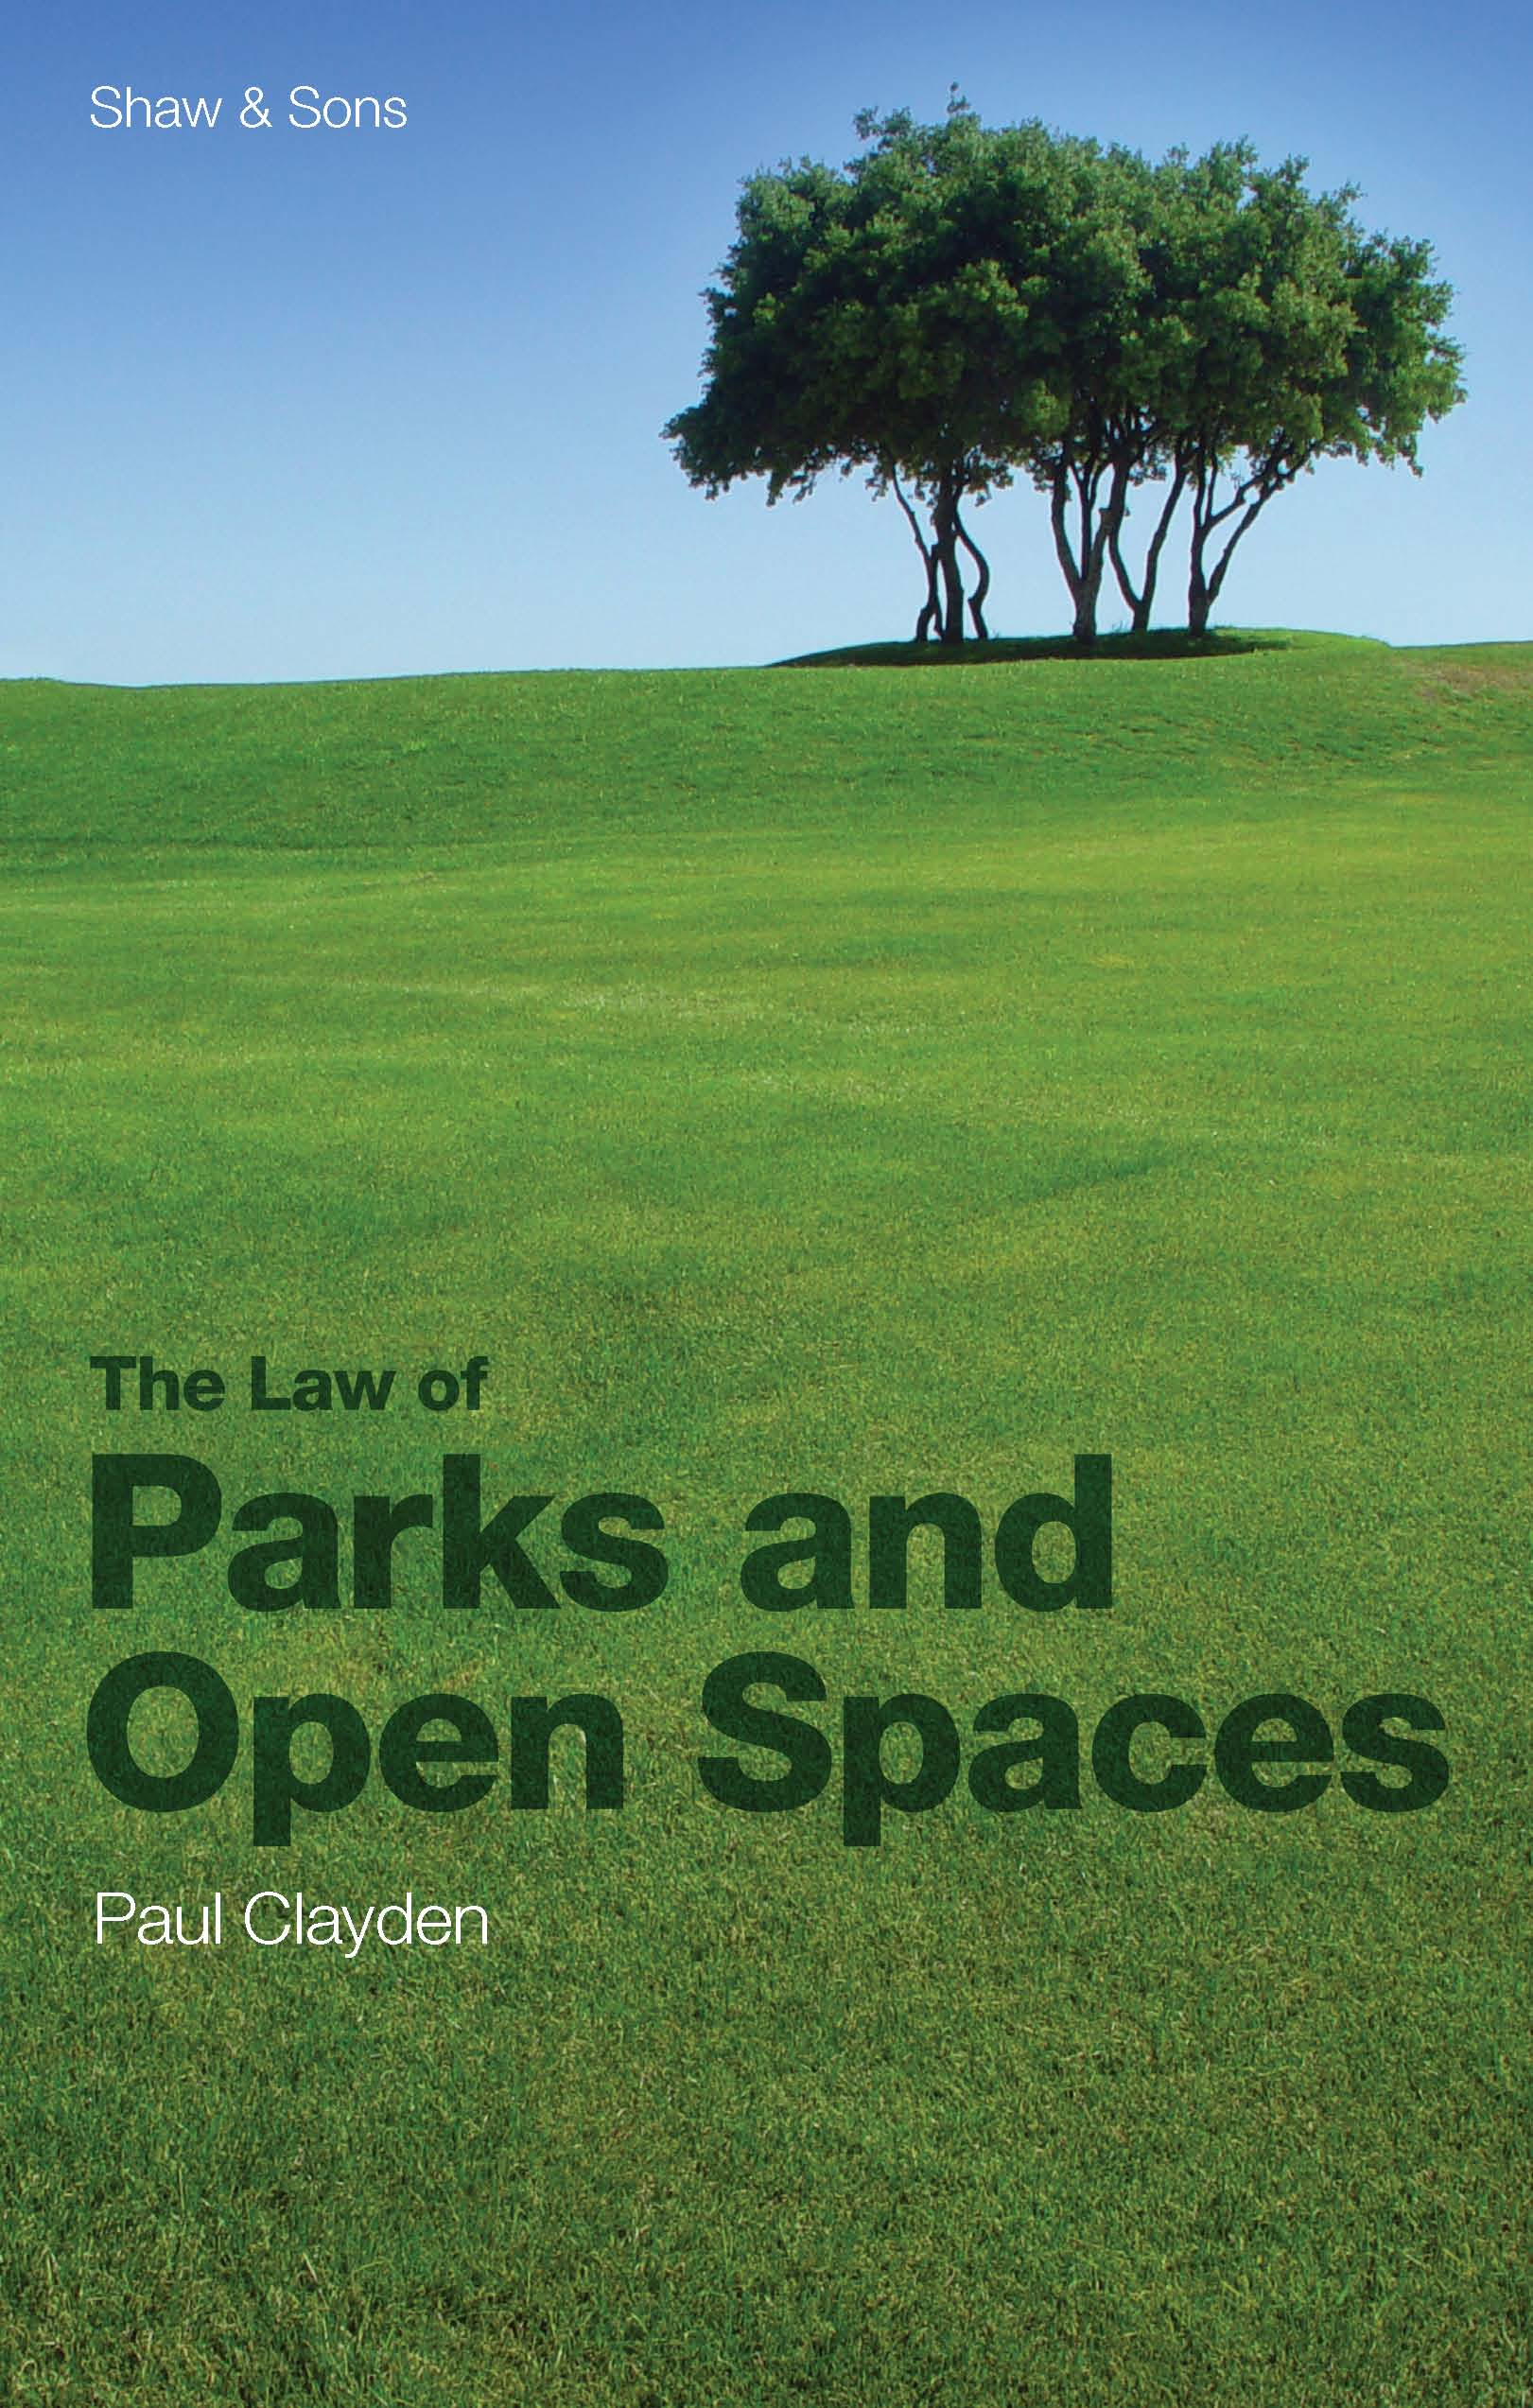 The Laws of Parks and Open Spaces